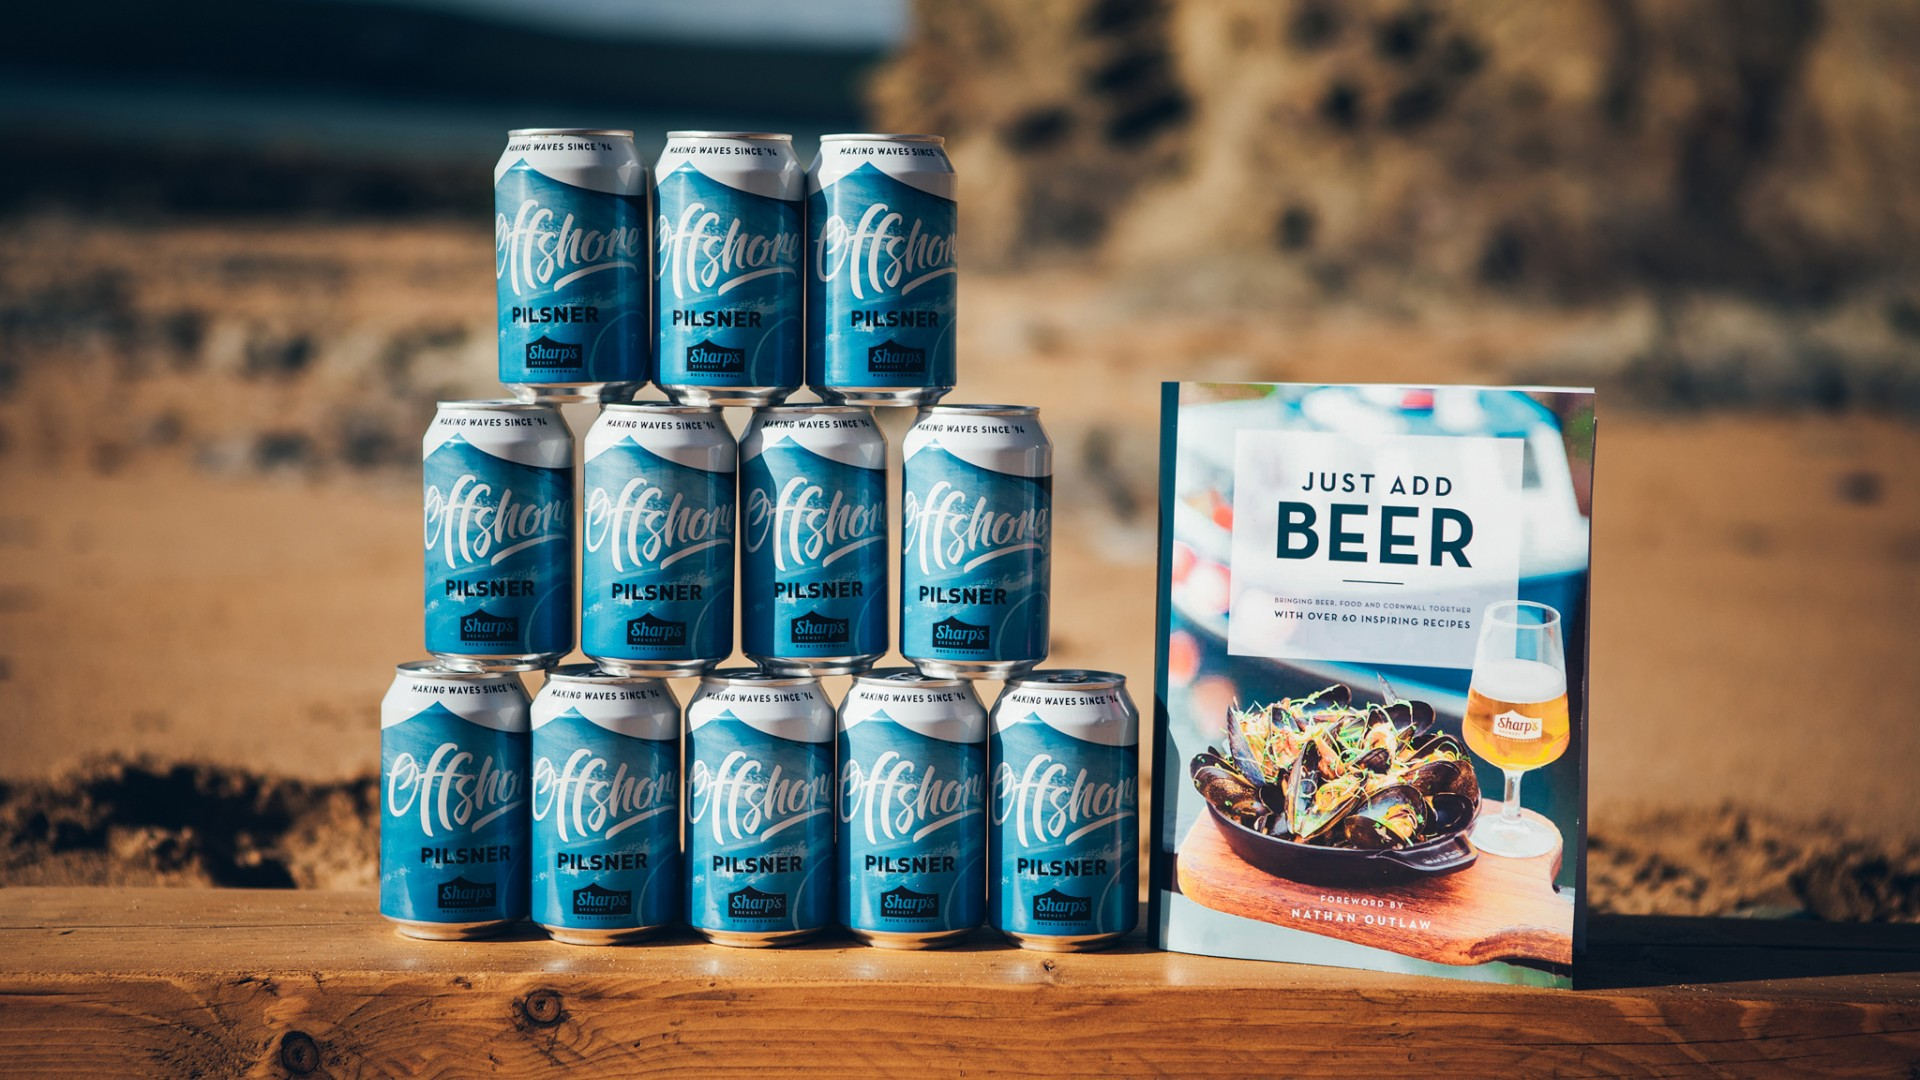 Sharp's Offshore pilsner and cookbook